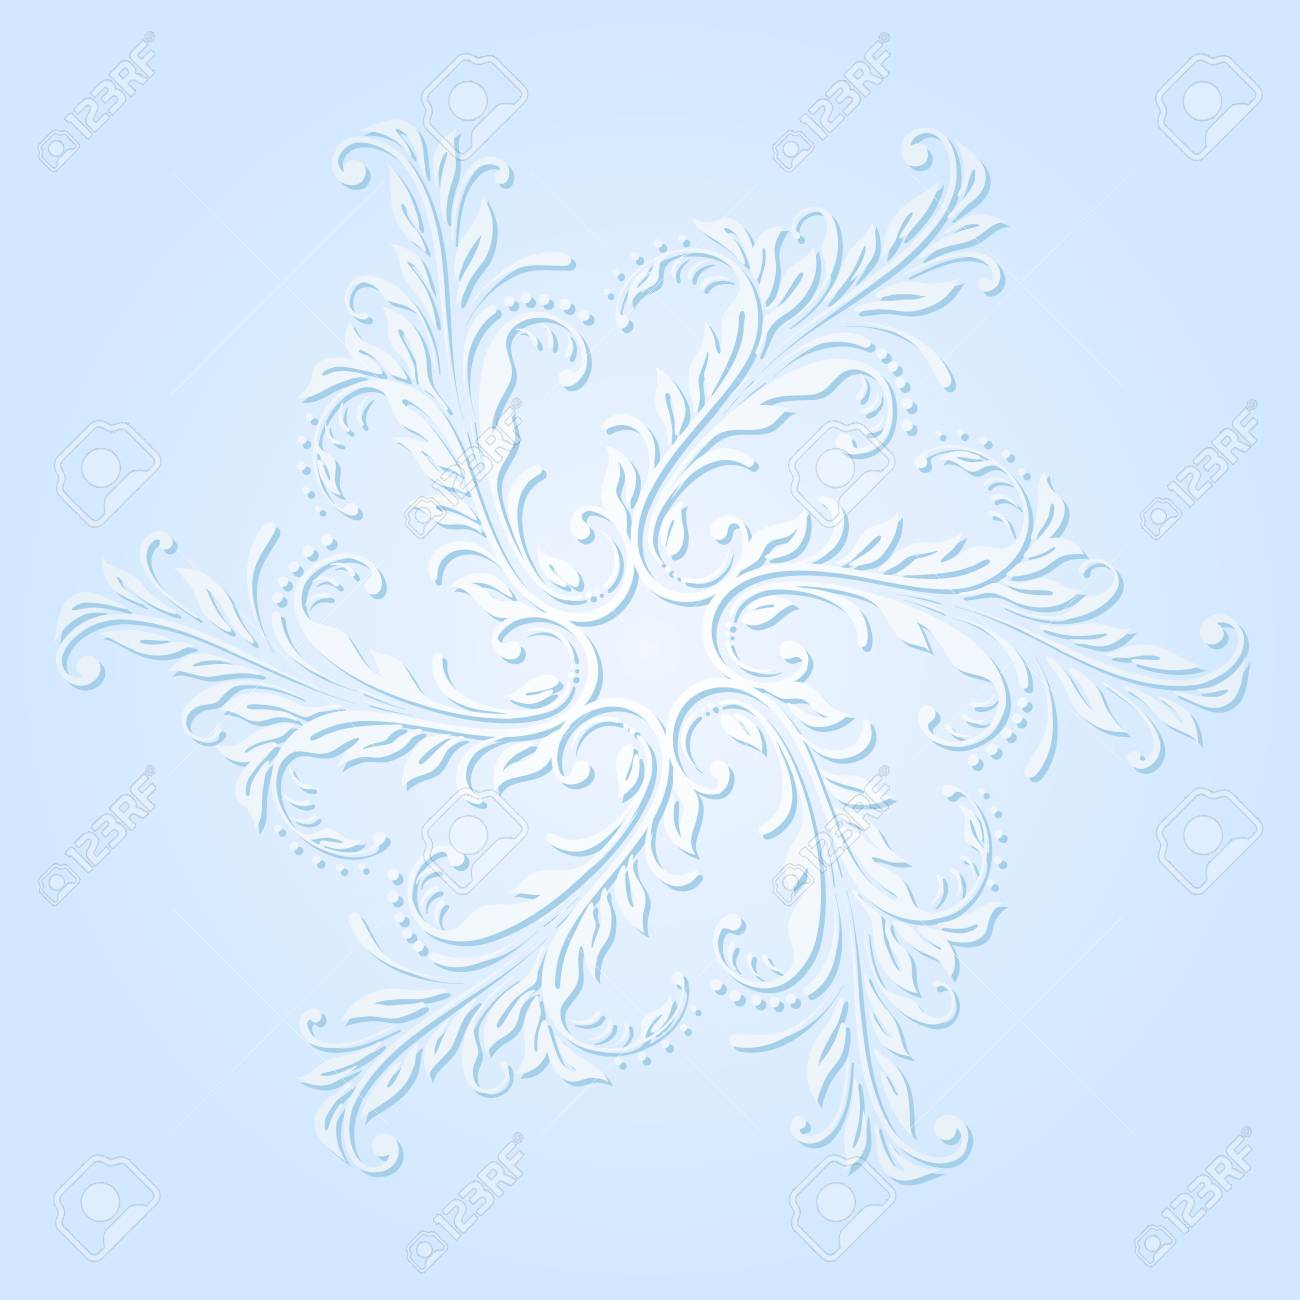 illustration with snowflake on blue background. Stock Vector - 16216937